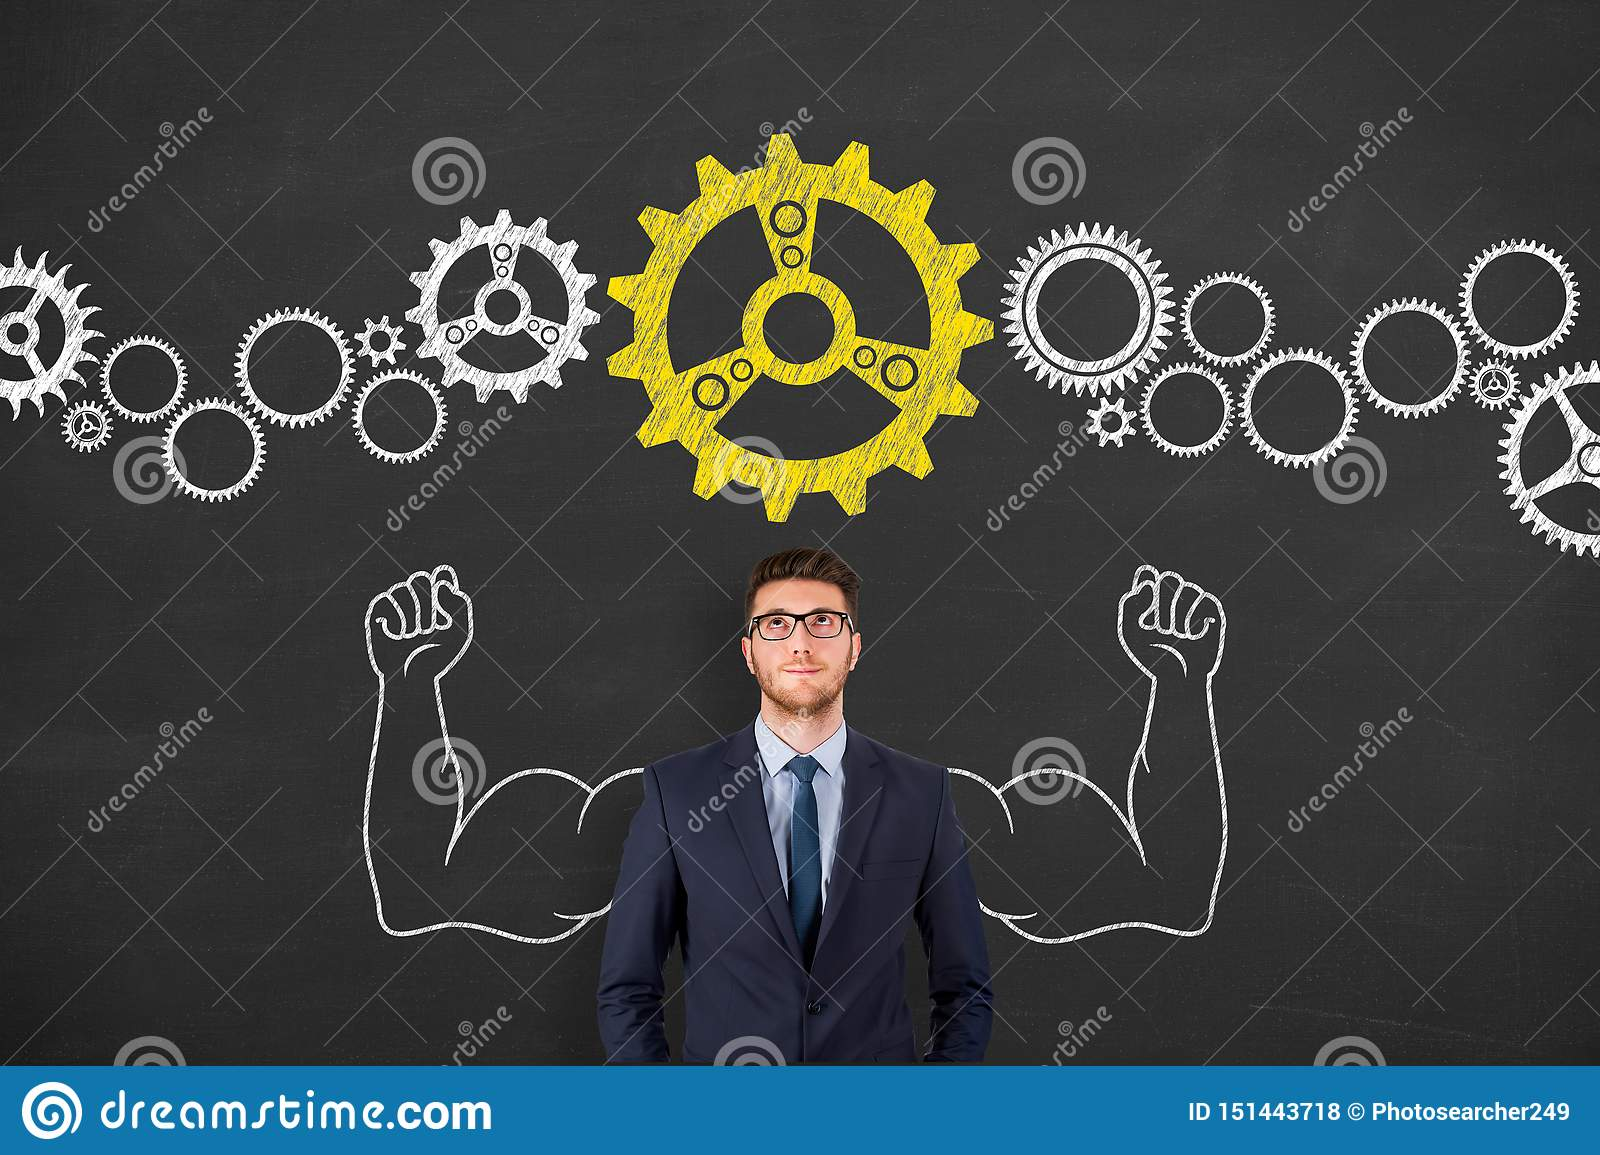 Solution Concepts with Gears on Chalkboard Background